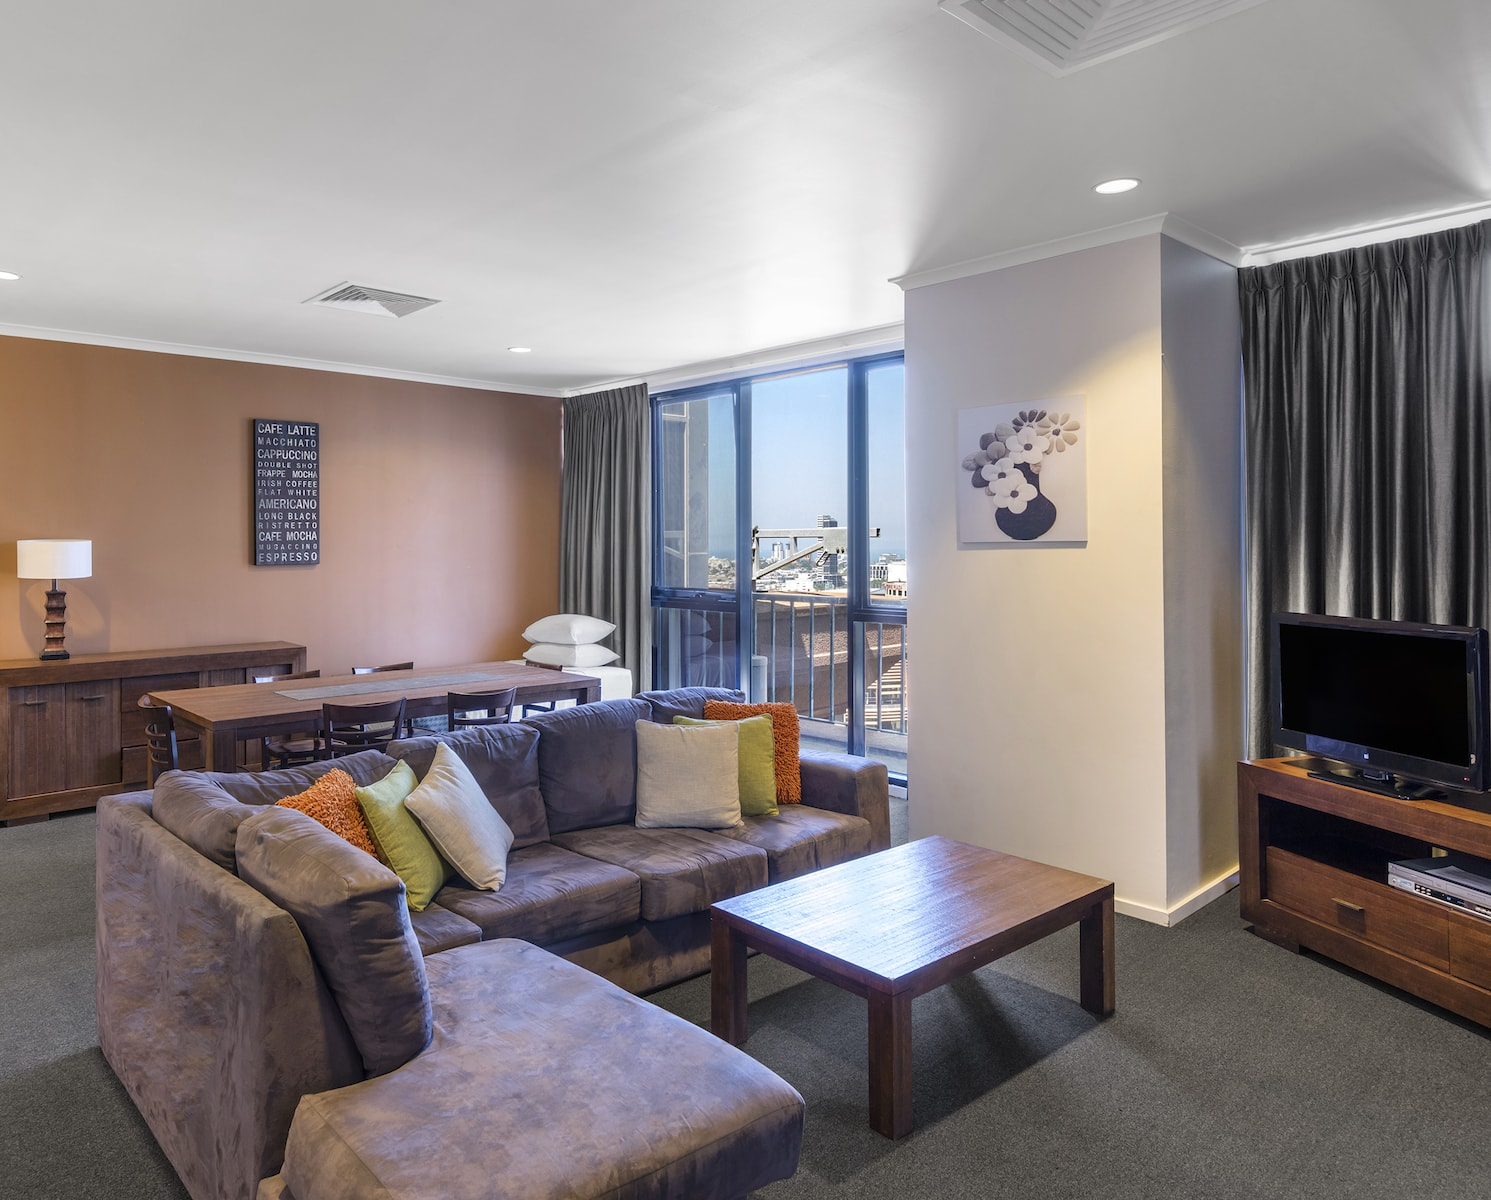 riverside apartments melbourne vic accommodation three bedroom 1